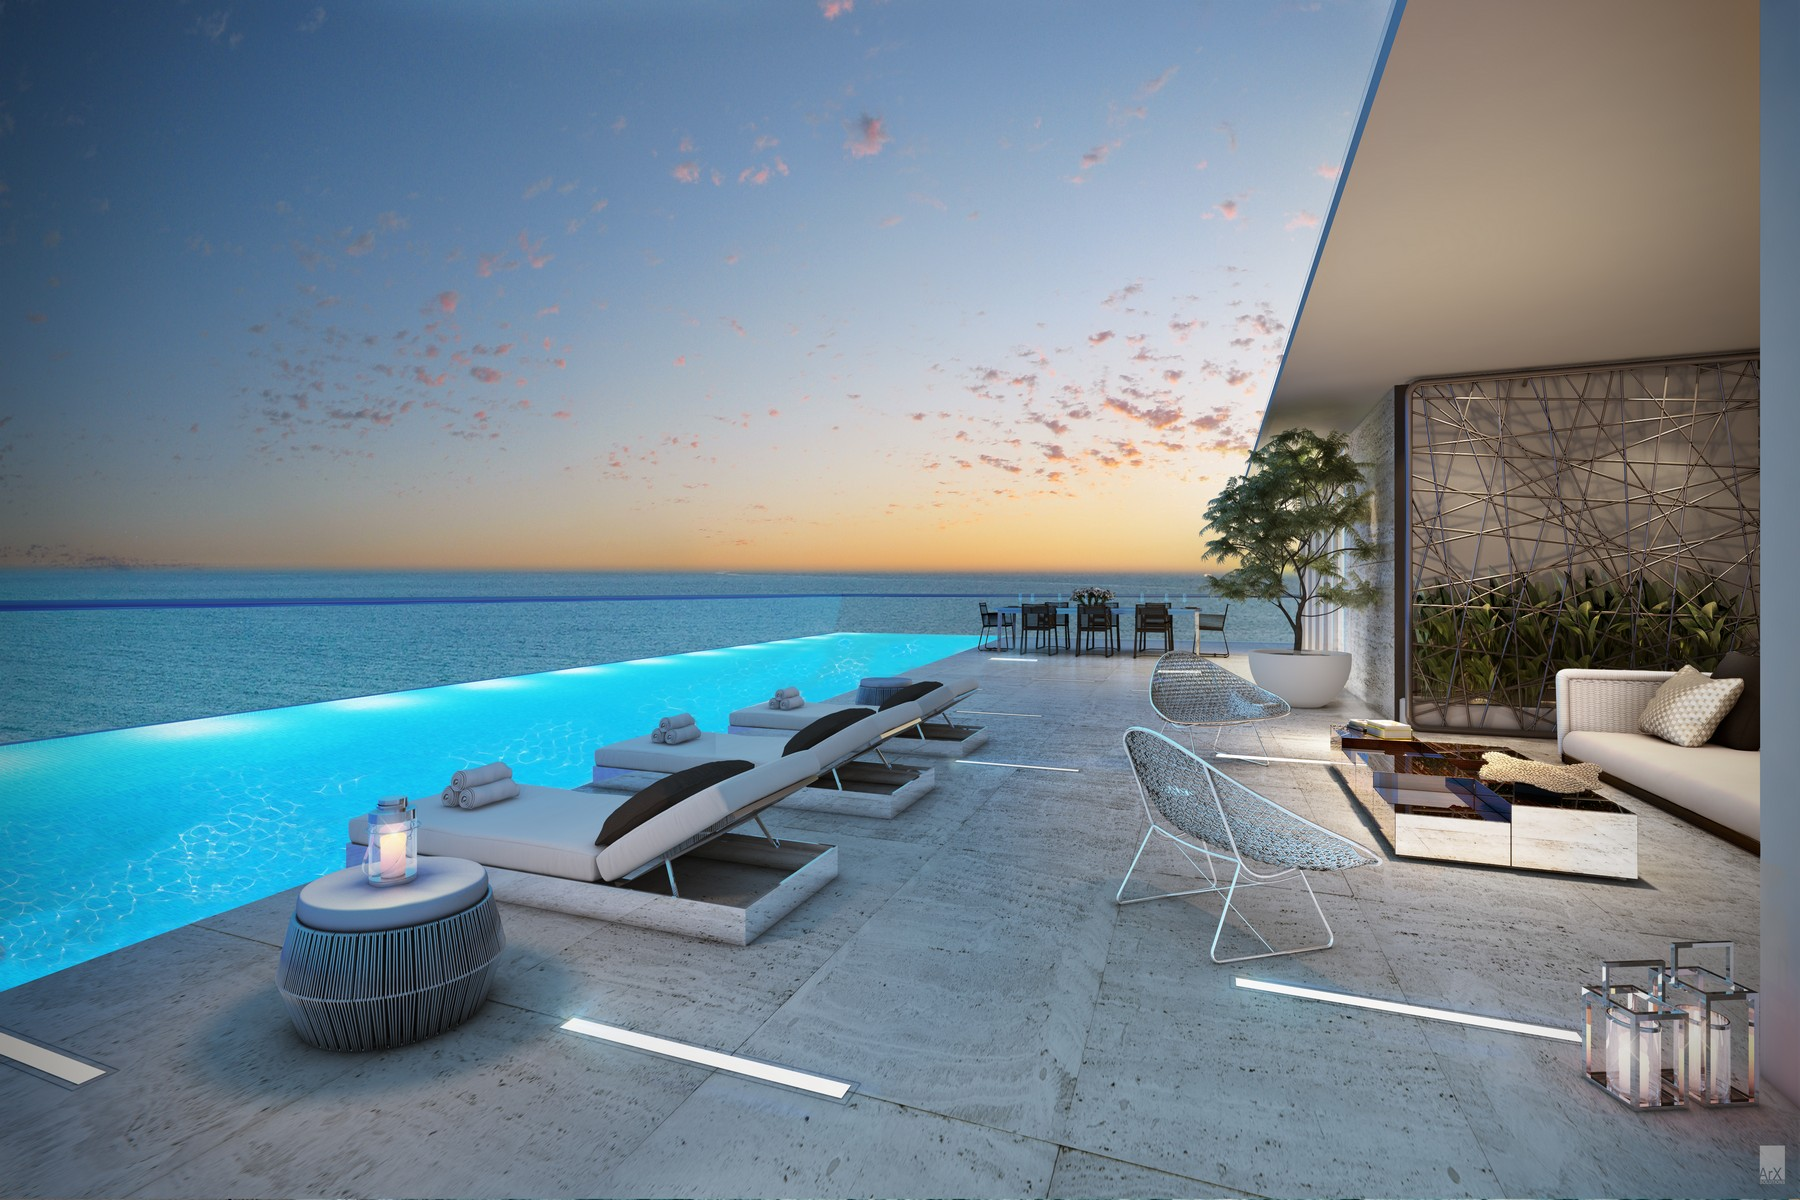 for Sale at Turnberry Ocean Club 18501Collins Ave PH01 Sunny Isles Beach, Florida, 33160 United States